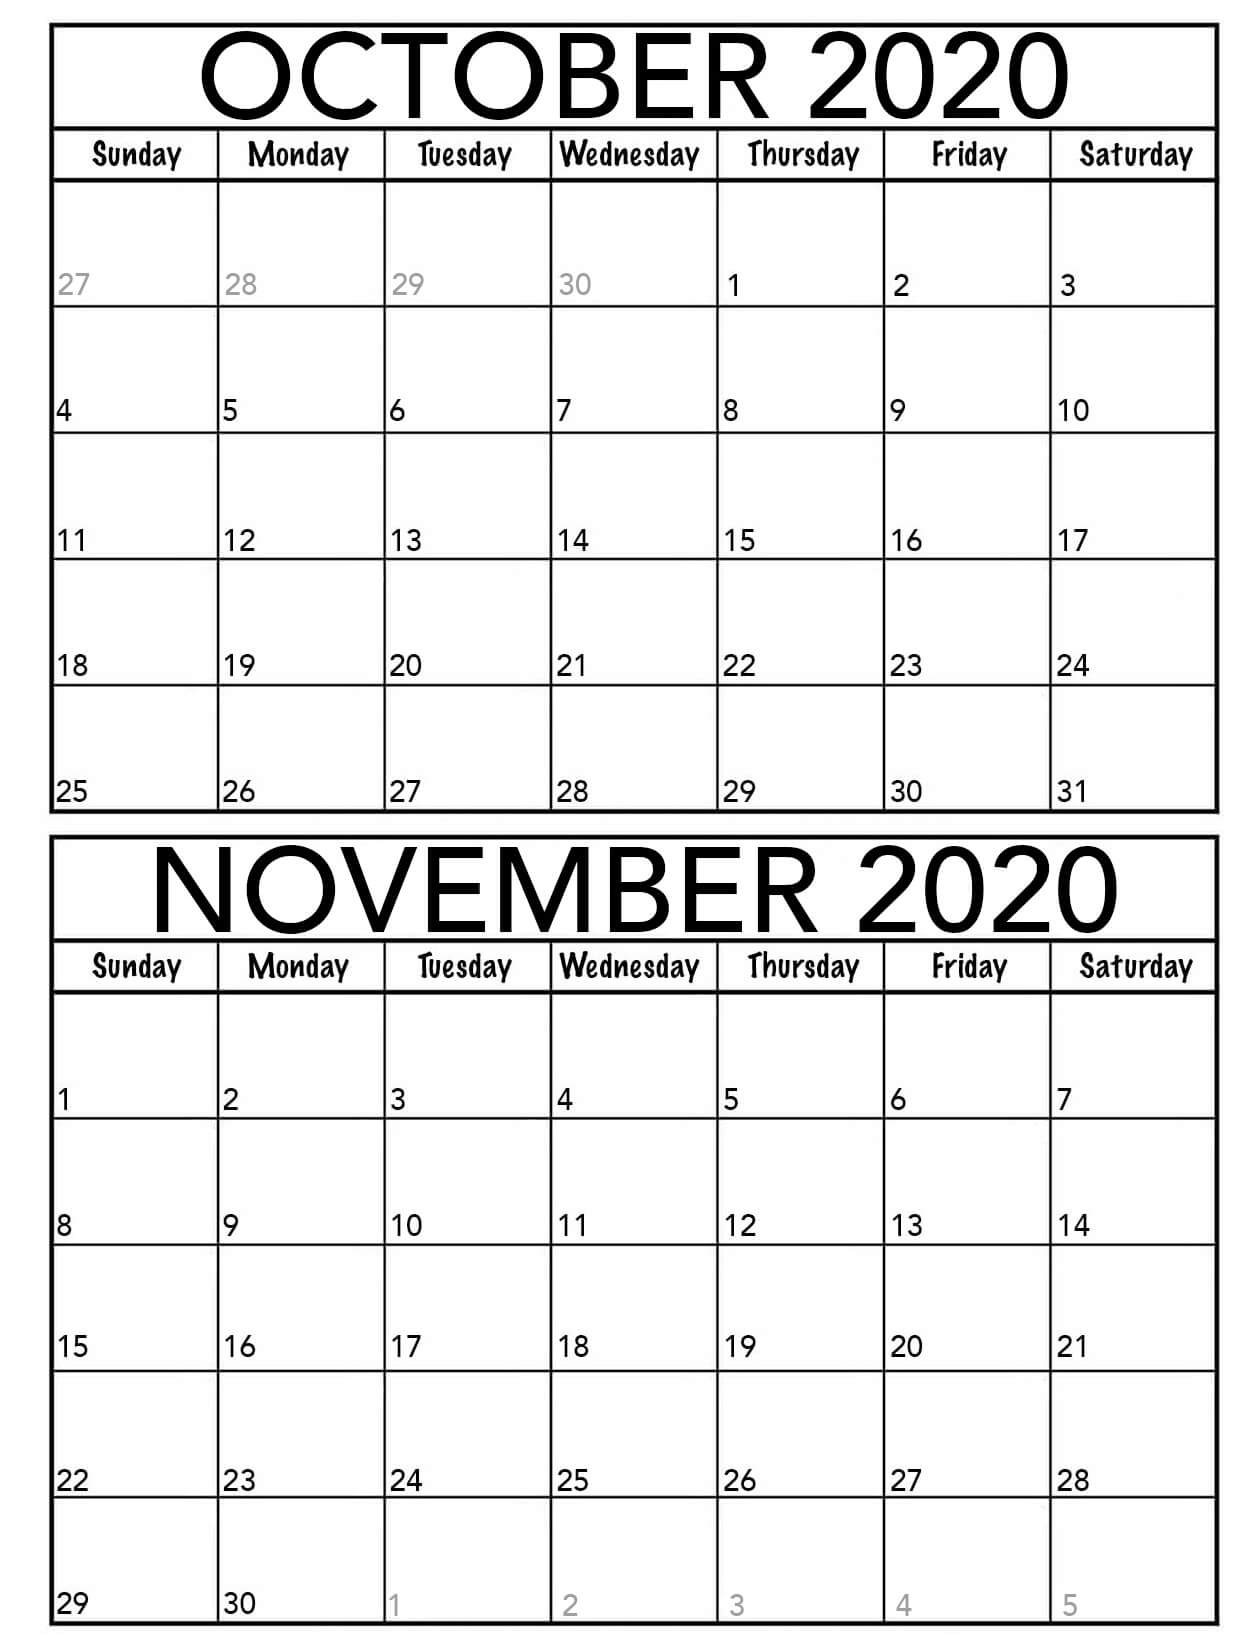 October 2020 To March 2021 Calendar Online | Free Printable Calendar Shop October 2020 - September 2021 Calendar